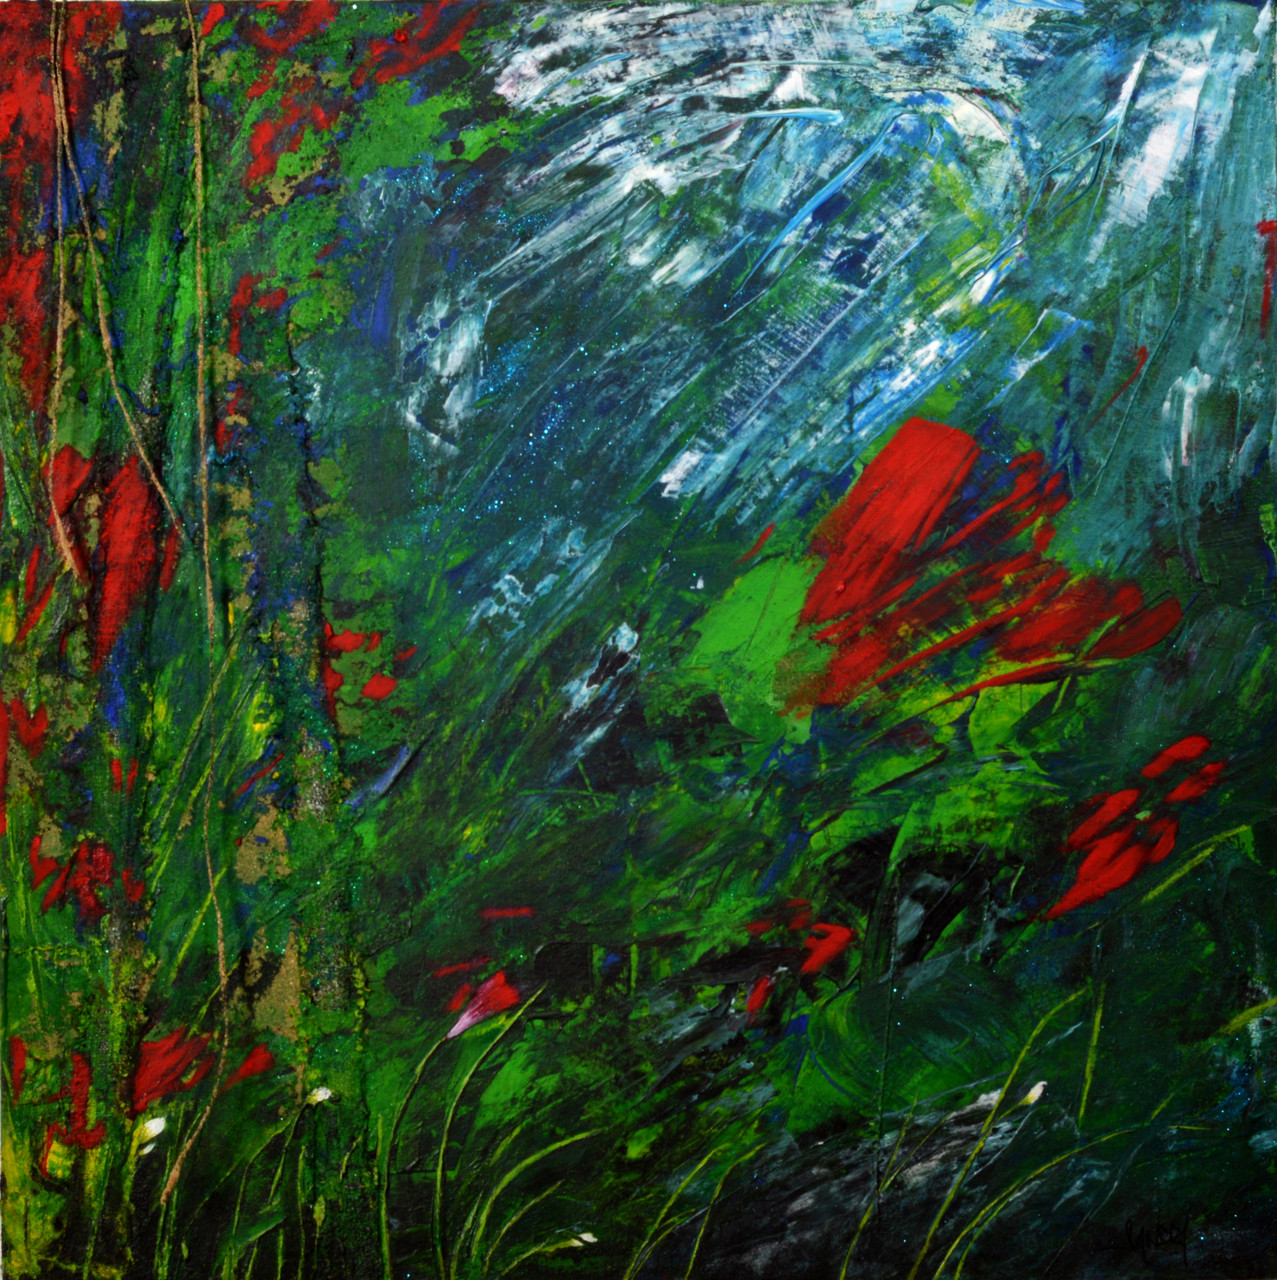 Behind the garden - 60x60 cm - sold